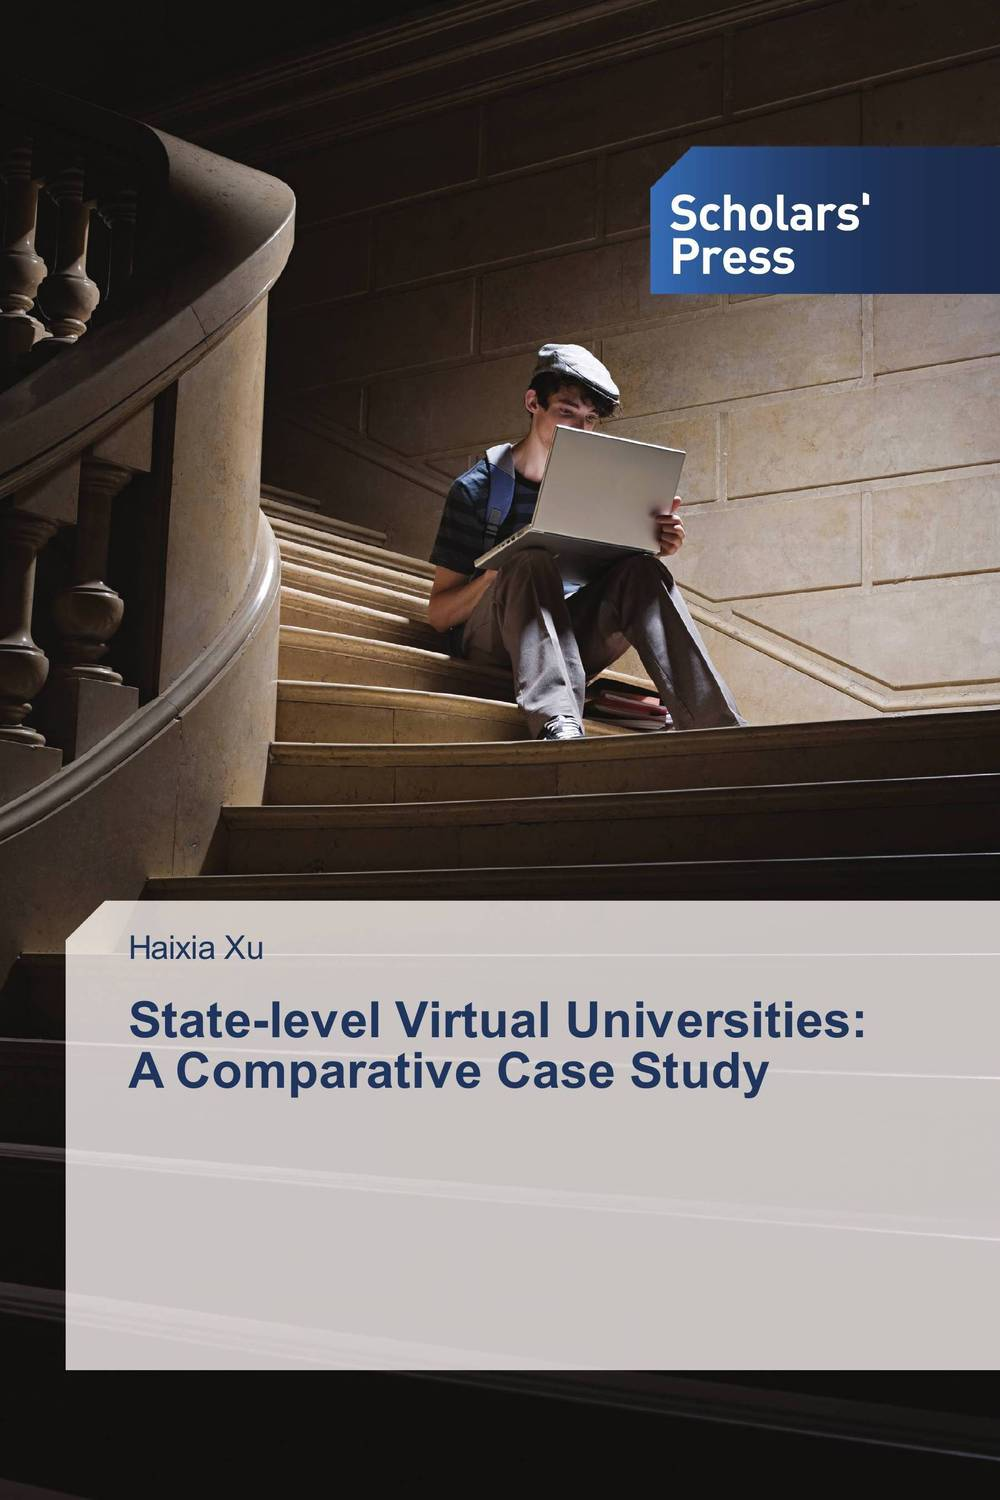 State-level Virtual Universities: A Comparative Case Study rakesh bhatia surinder bir singh and harpreet kaur organizational development comparative study of engineering colleges